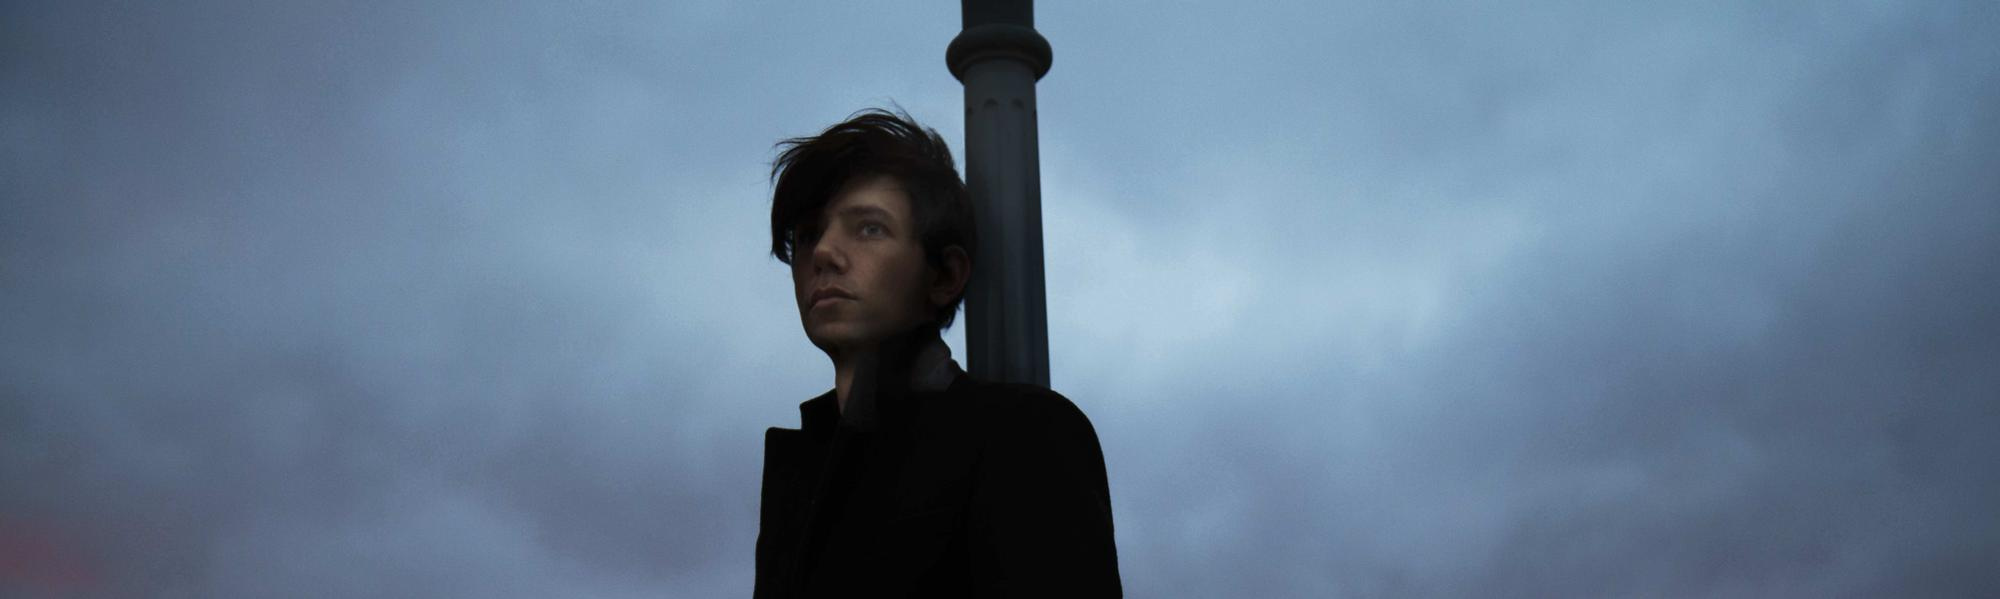 Tiga's Teamed up with Jasper James for One of the Deadliest Records of the Year to Date